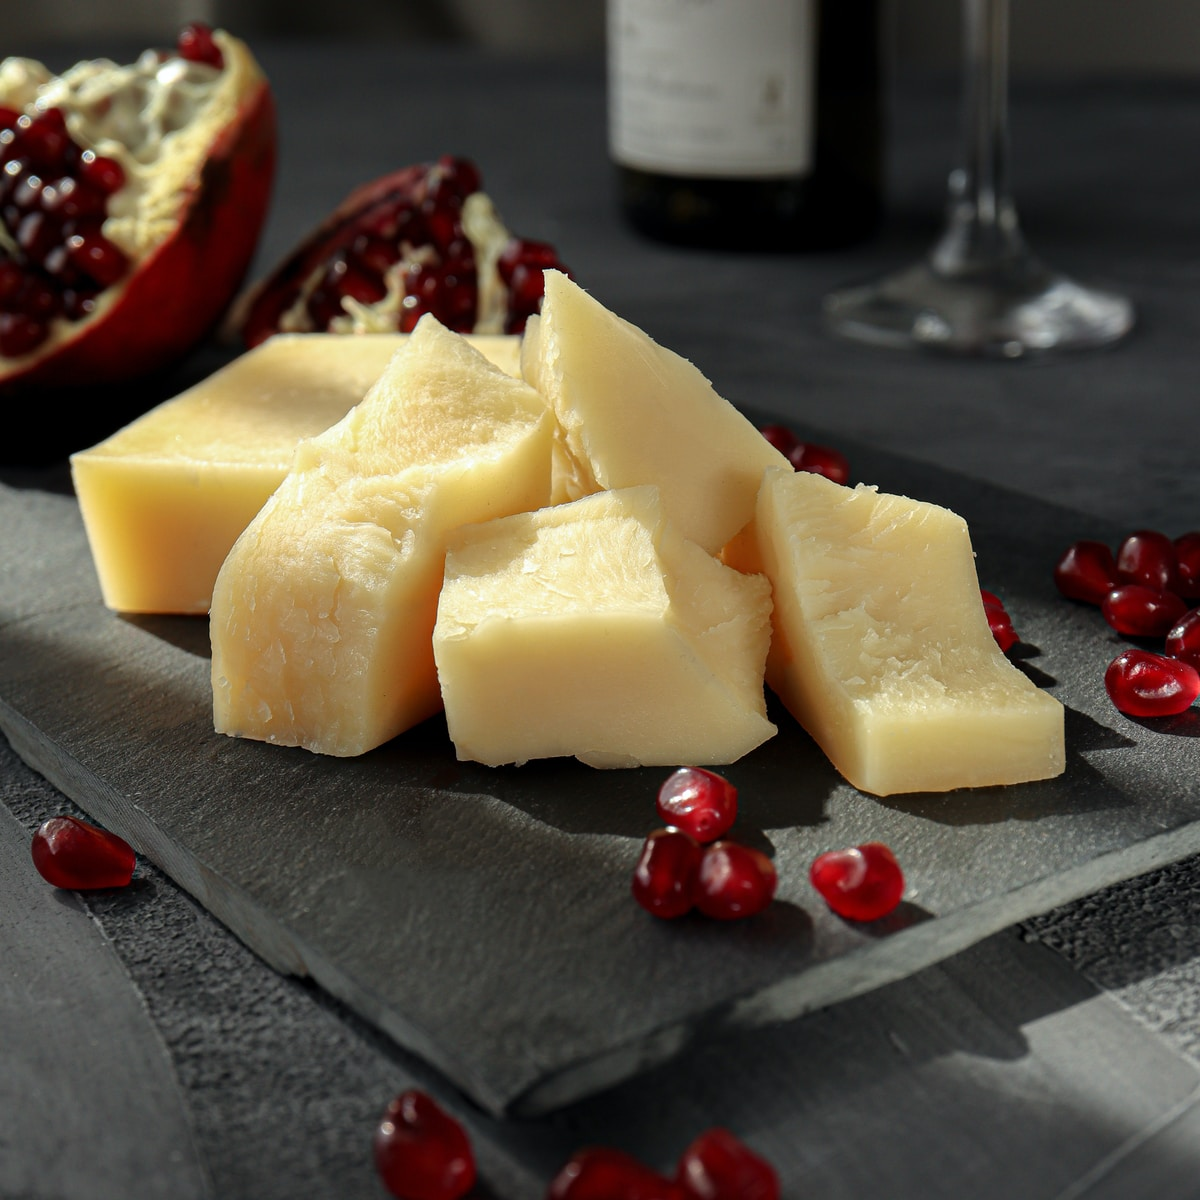 sliced cheese on black plate beside wine glass